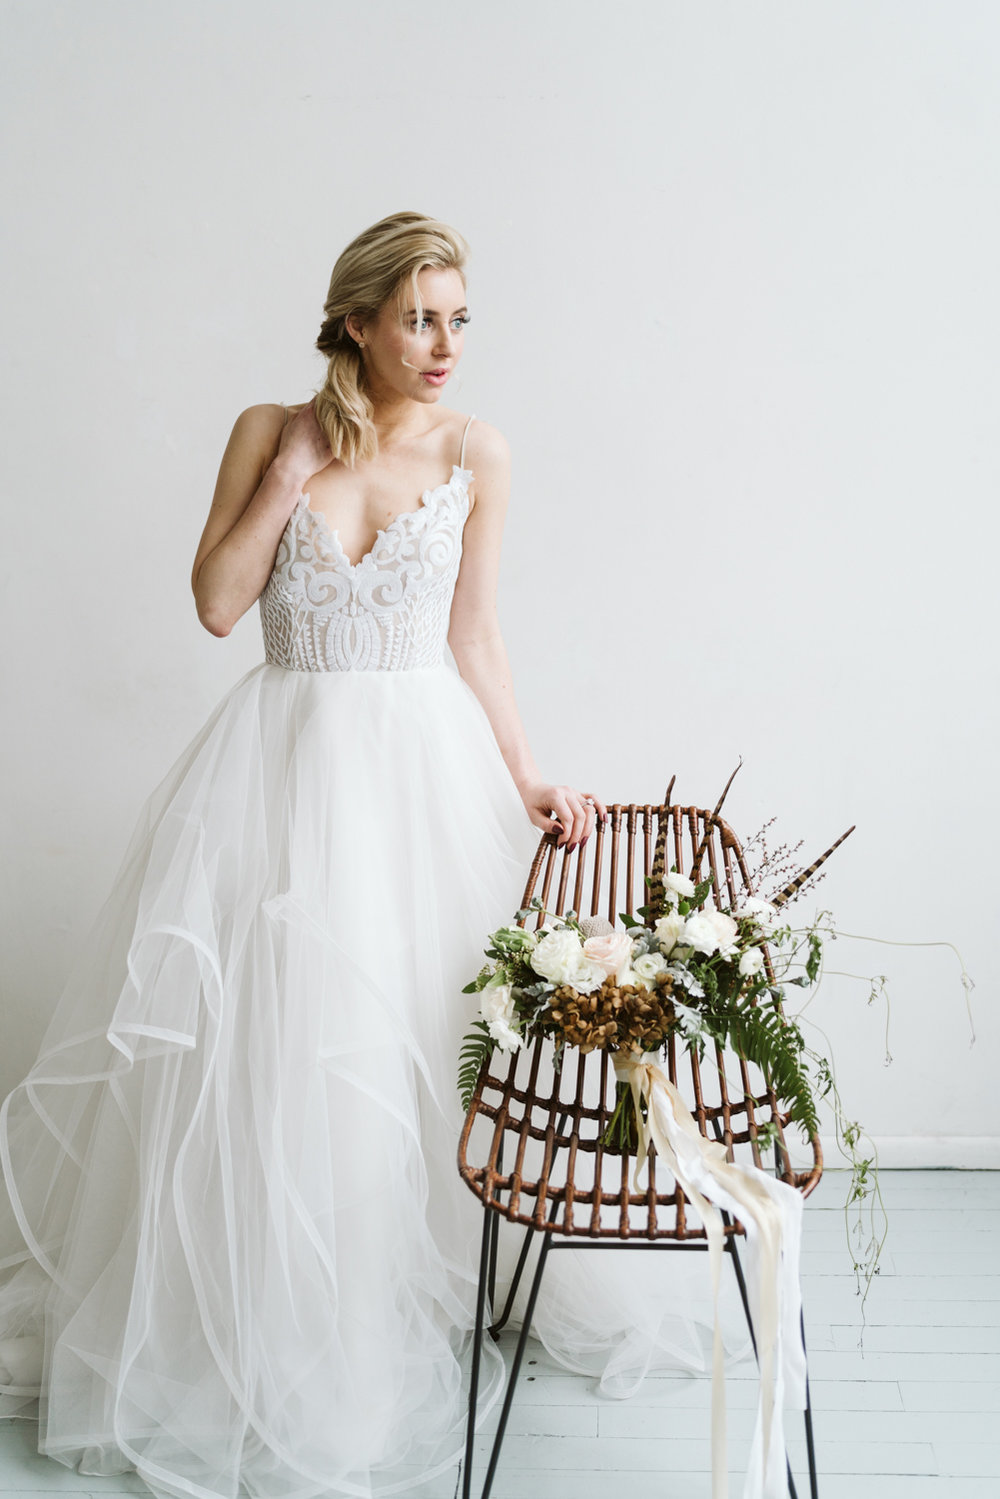 April Yentas Photography - January Styled Shoot-105.jpg